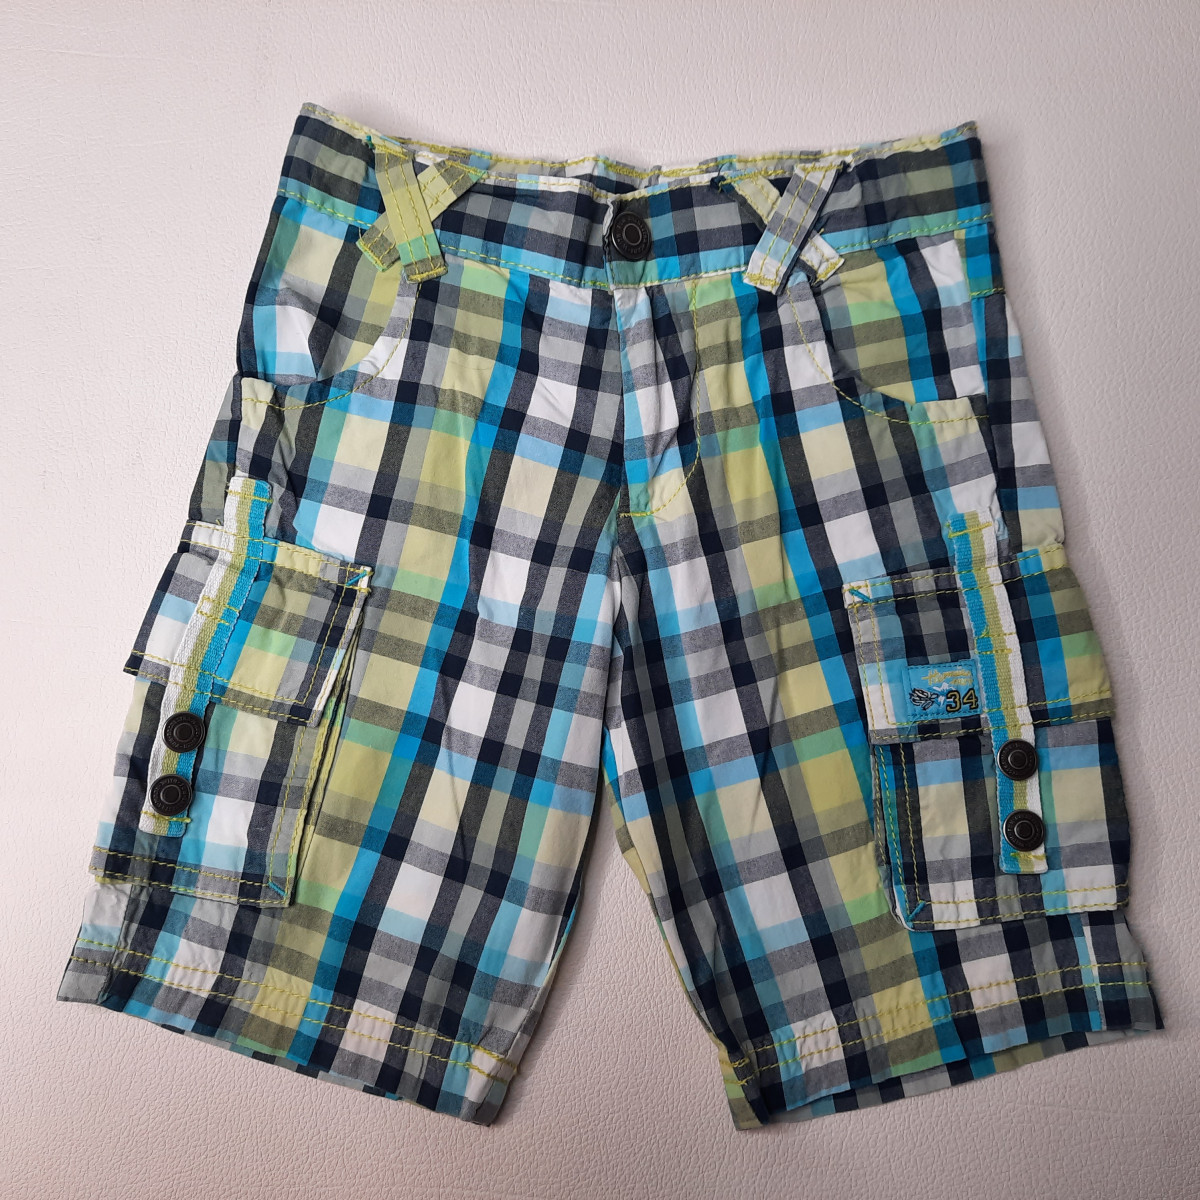 Shorts, Bermudas - photo 24